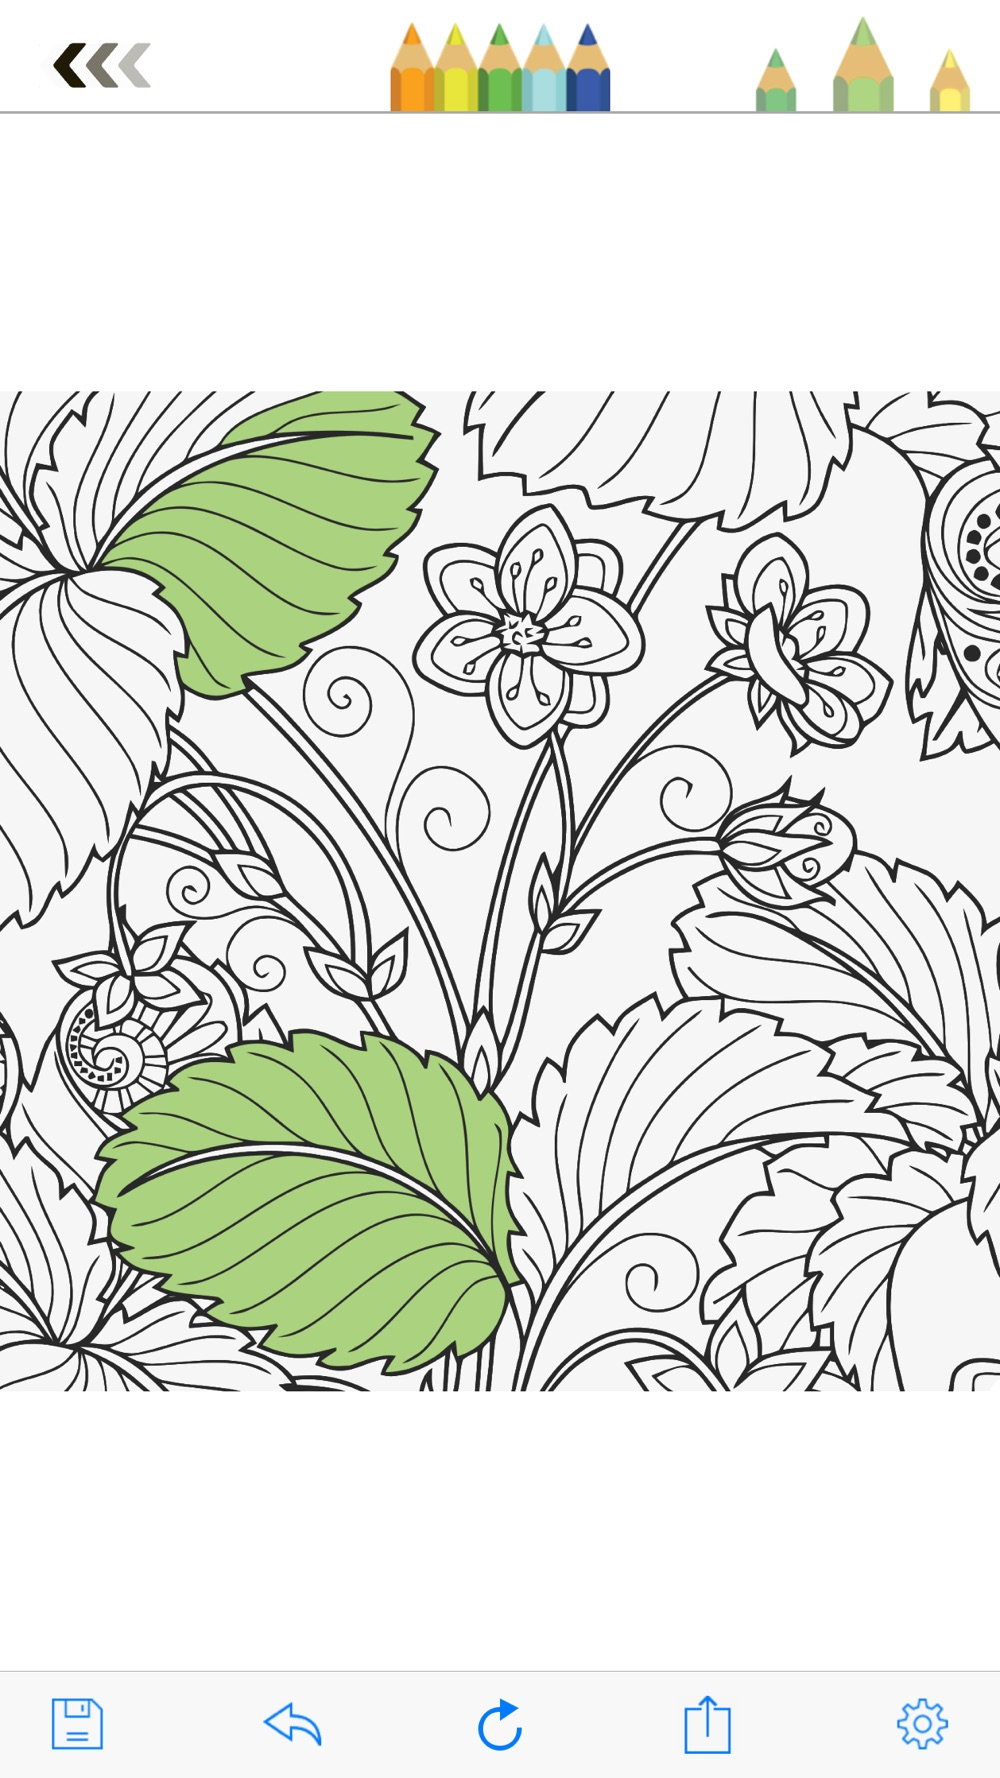 Hack tool for Colorty: Best Coloring Book for Adults